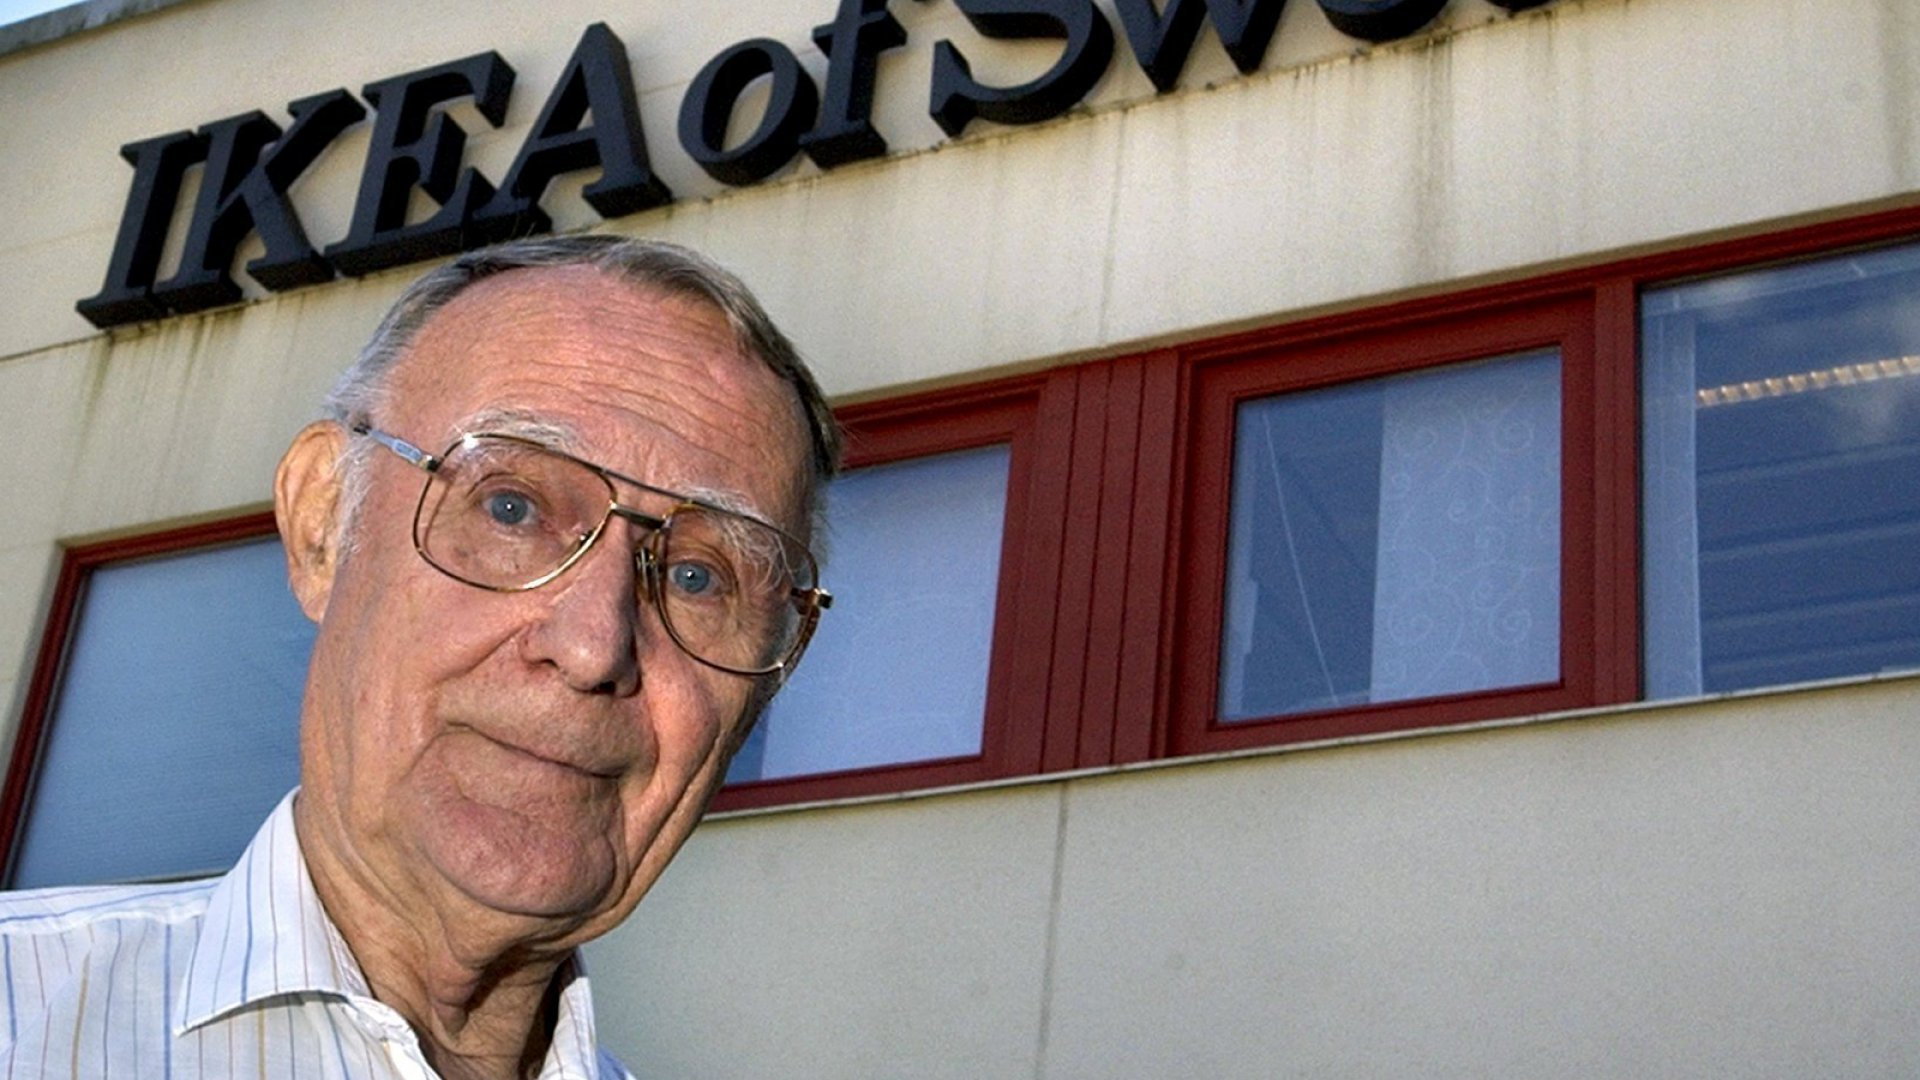 In this Aug. 6, 2002 file photo, Ingvar Kamprad, founder of Swedish multinational furniture retailer IKEA, stands outside the company's head office in Almhult, Sweden. IKEA confirmed Sunday Ingvar Kamprad, the IKEA founder who created a global furniture empire, has died at 91.